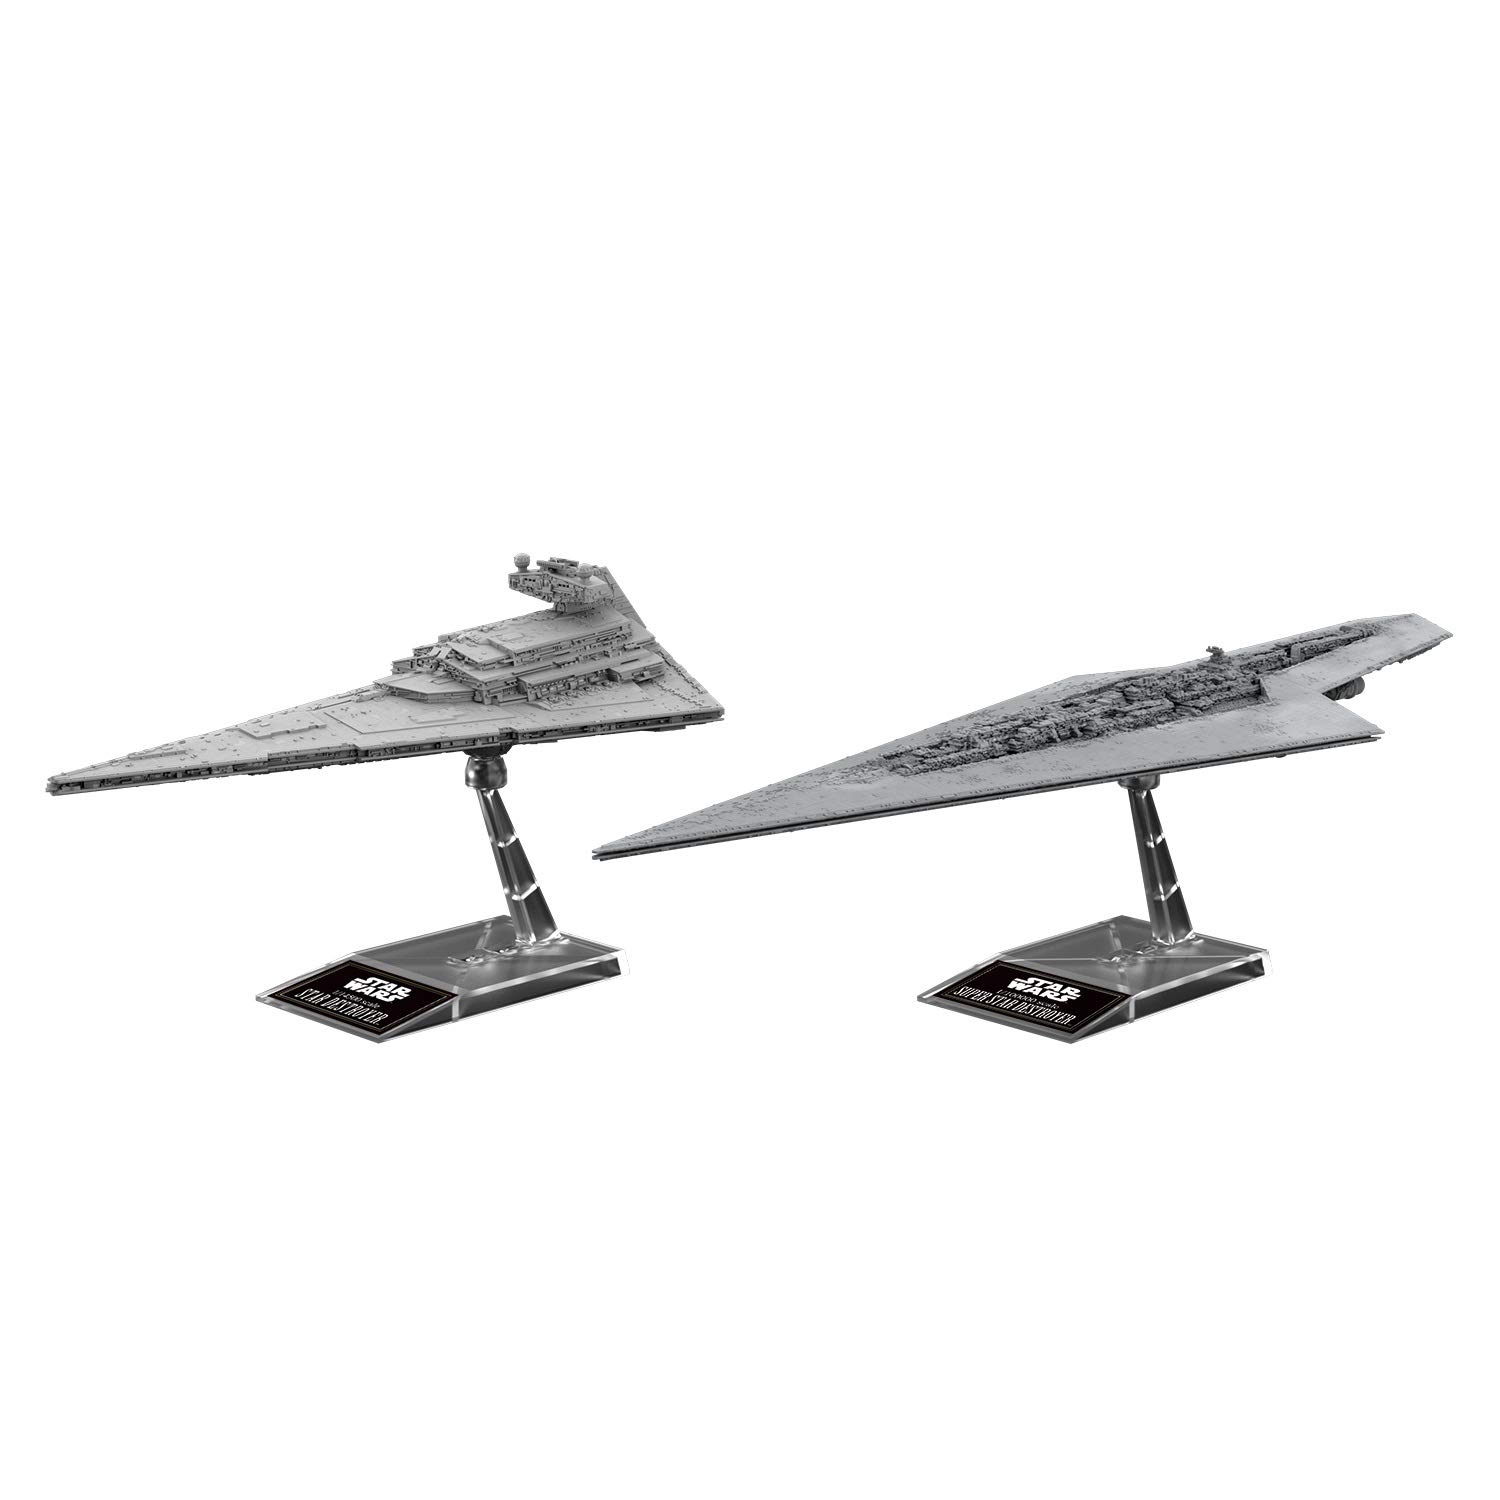 Star Wars 1/100000 & 1/14500 Scale Model Kit: Super Star Destroyer & Star Destroyer